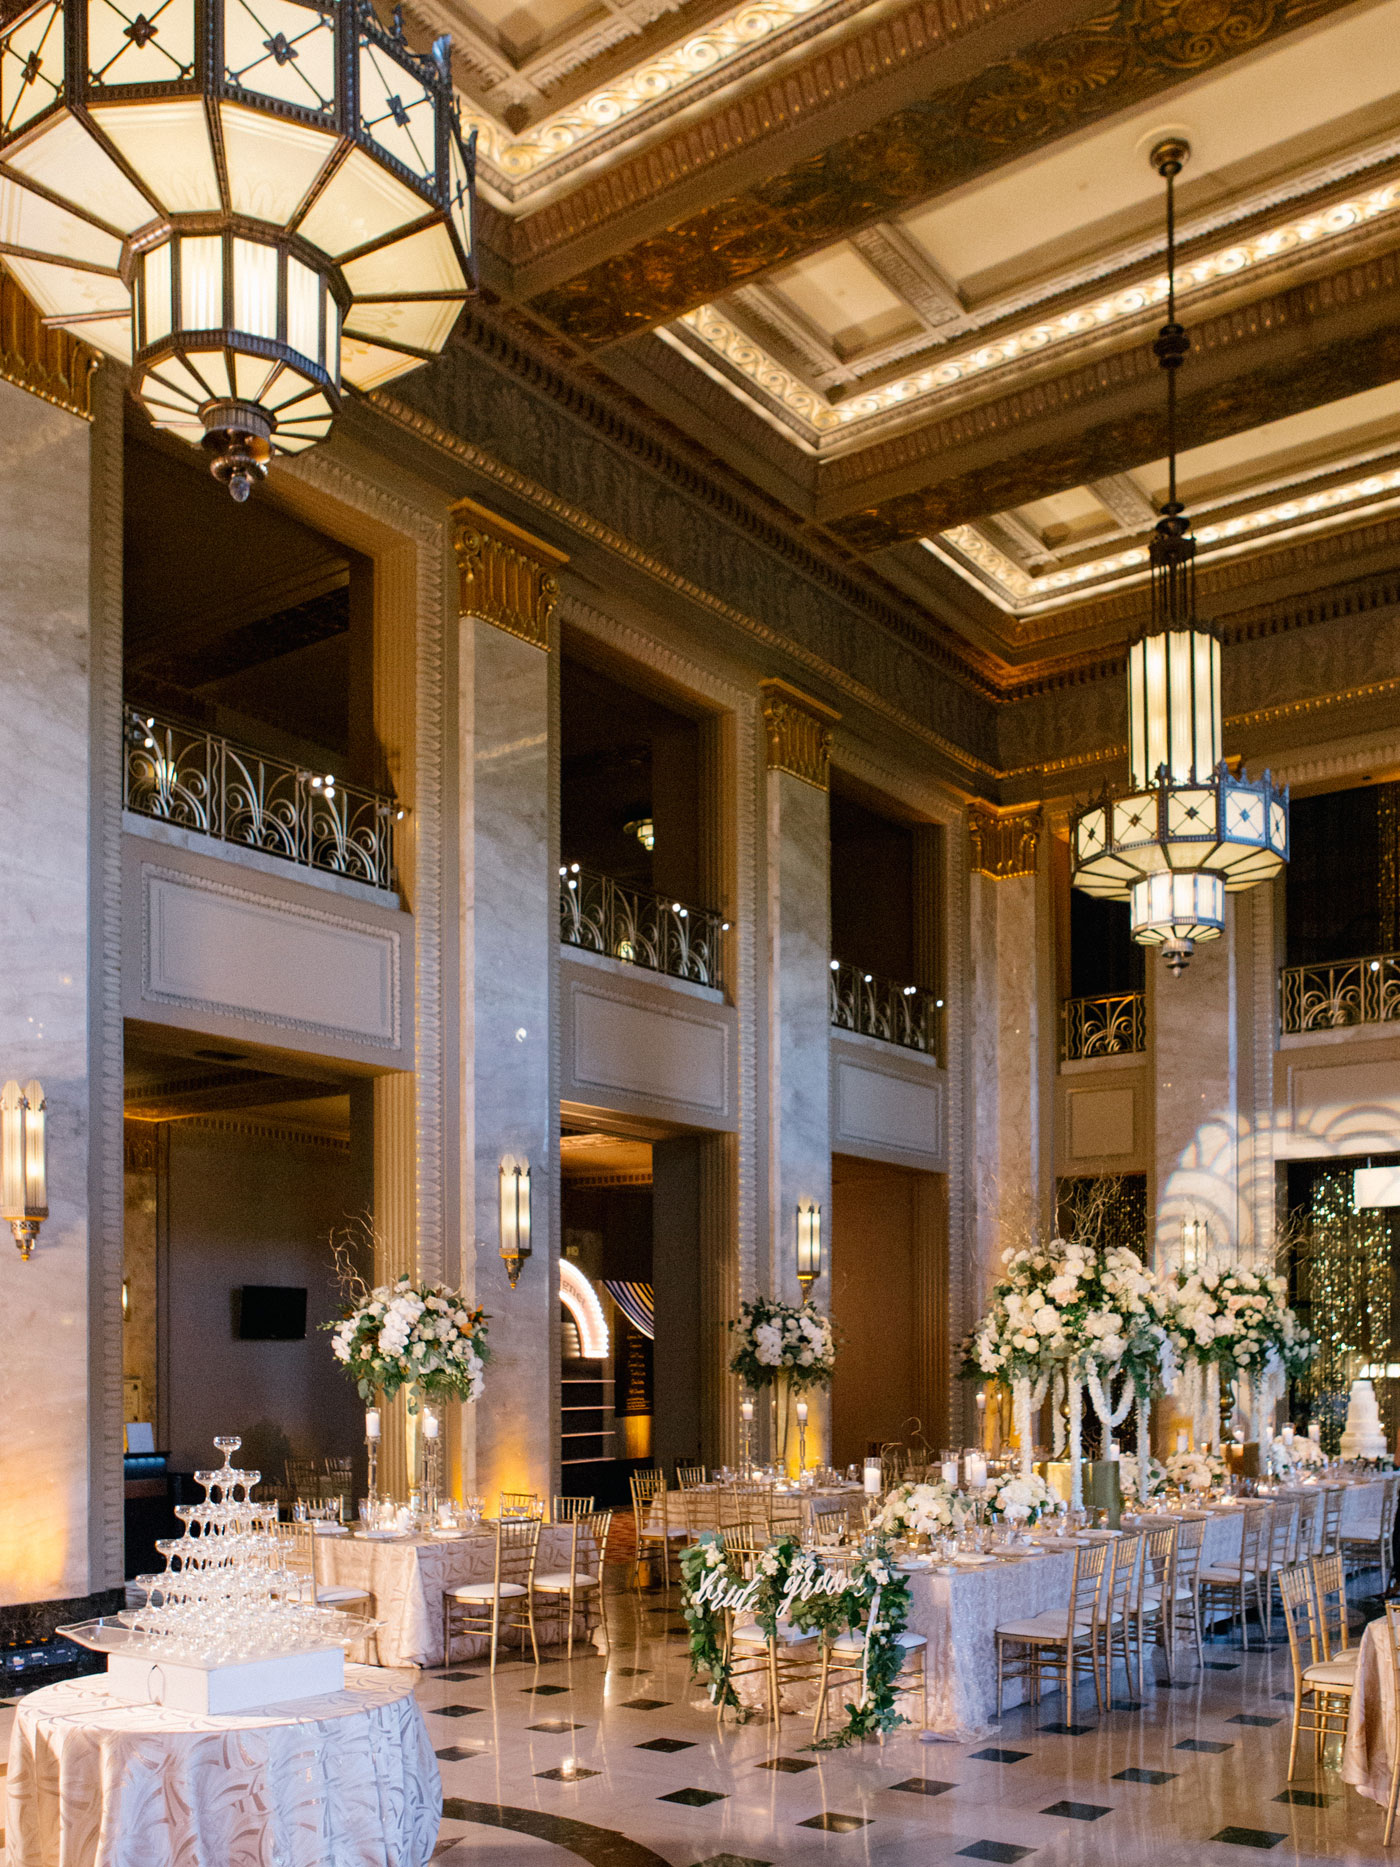 SOUTHERN SOIRéE AT THE PEABODY OPERA HOUSE – Mike Cassimatis